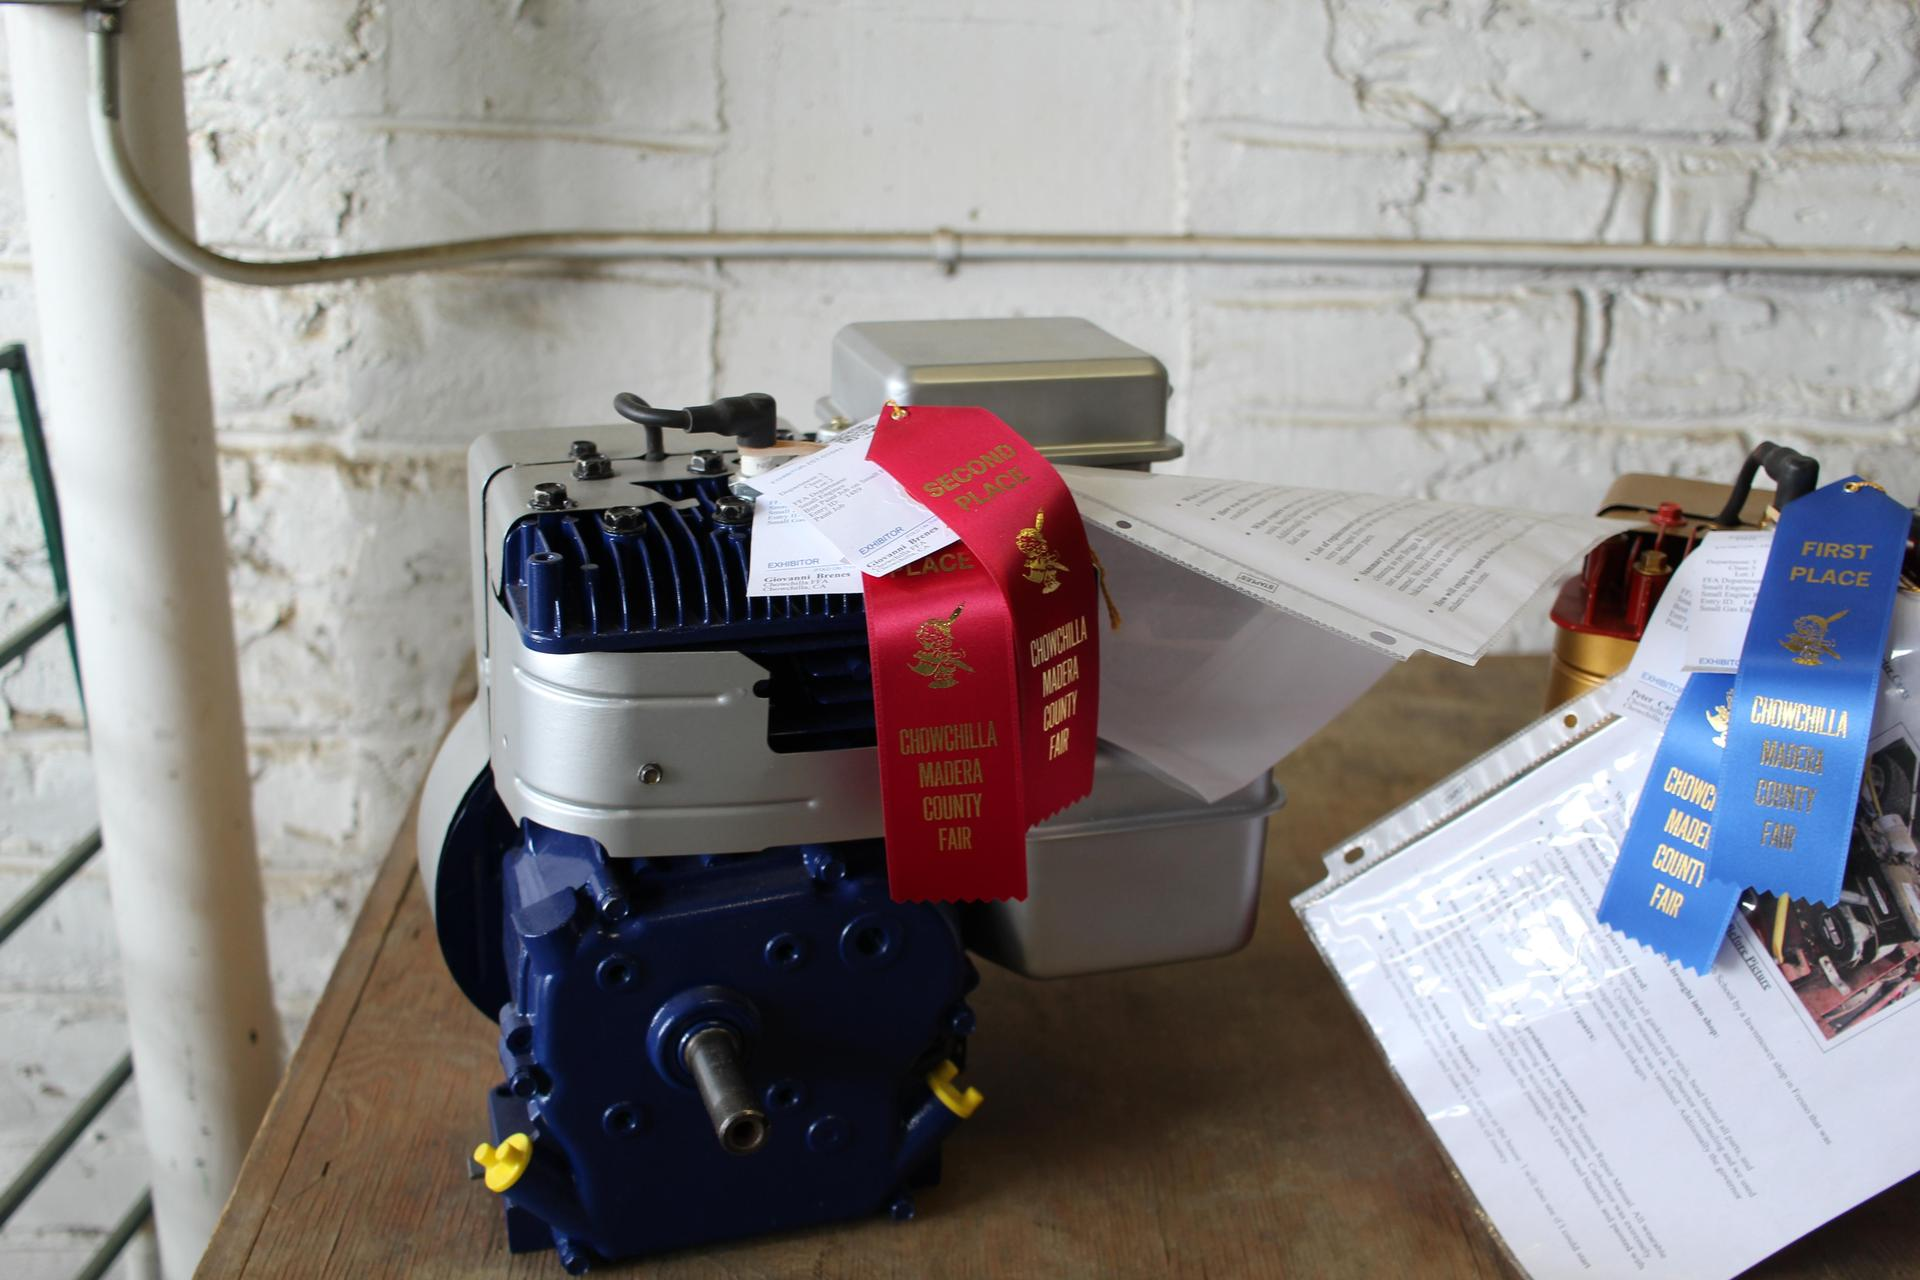 Student engine project on display